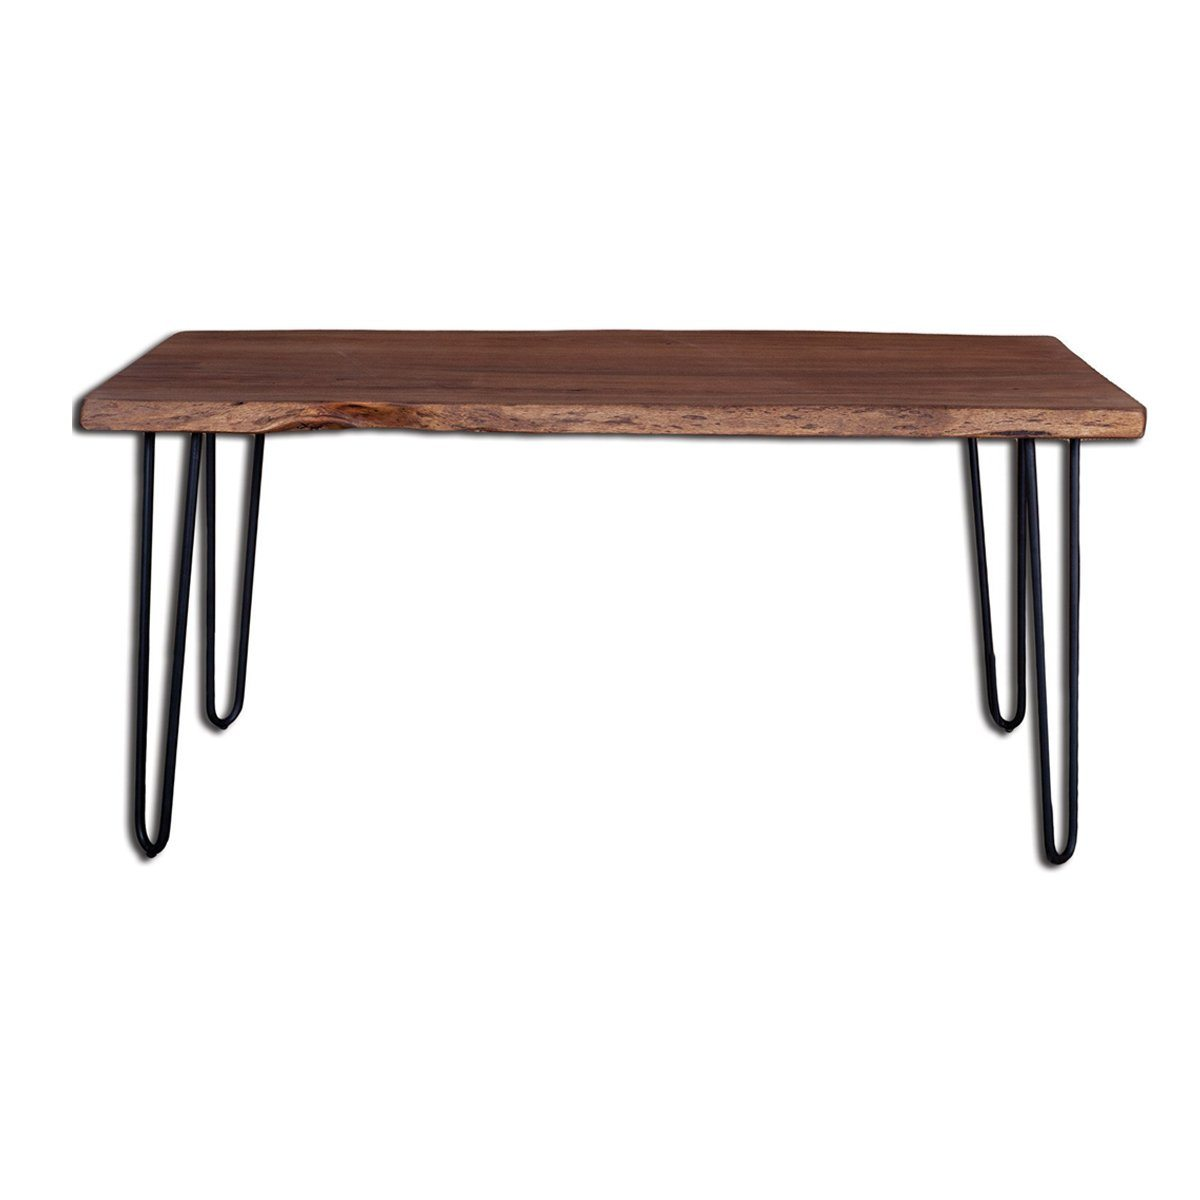 Solid Acacia Wood Organic Dining Table - Showhome Furniture